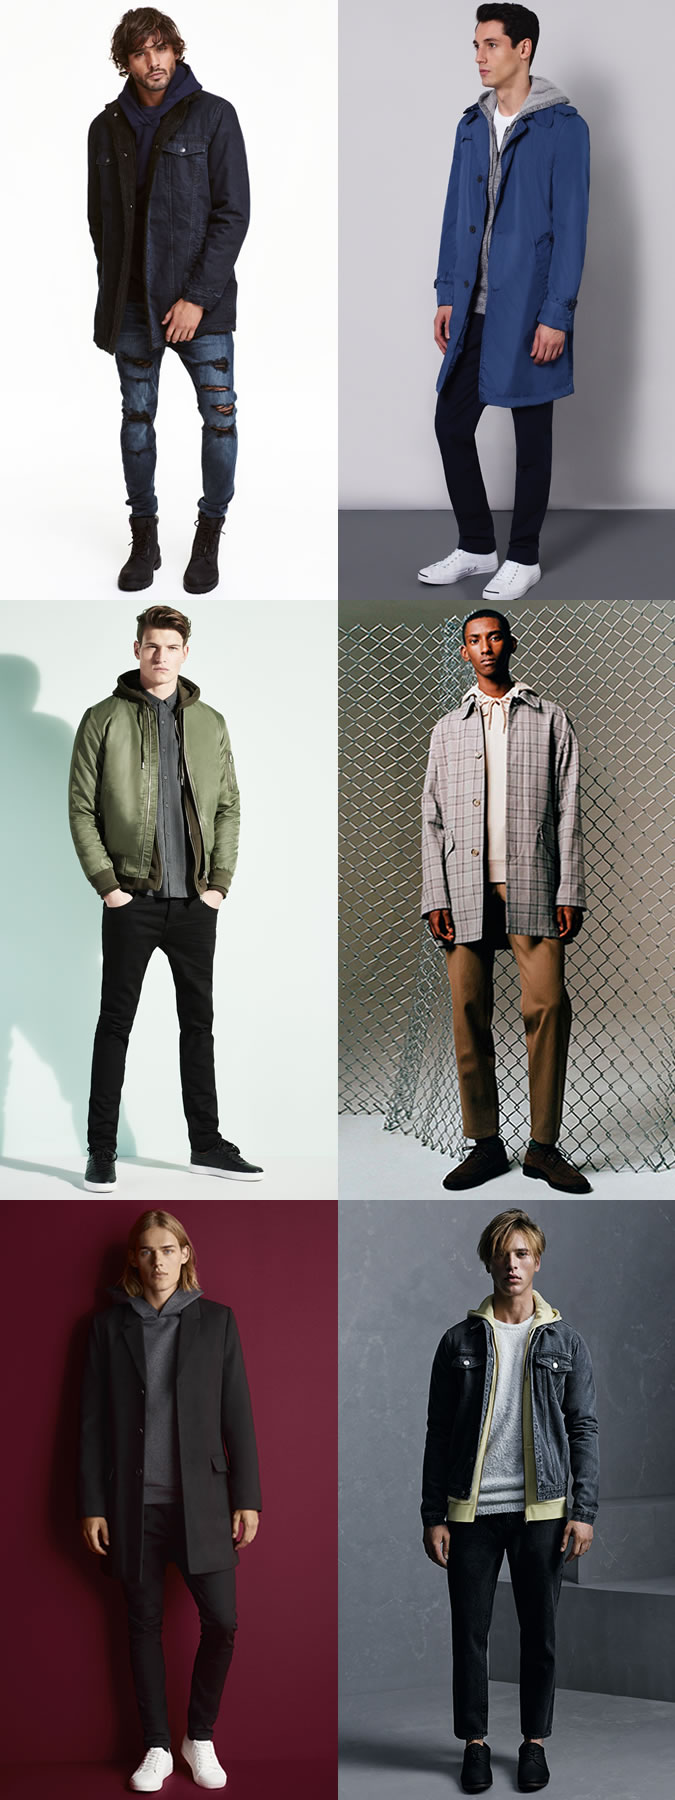 Men's Layered Hoodies Outfit Inspiration Lookbook